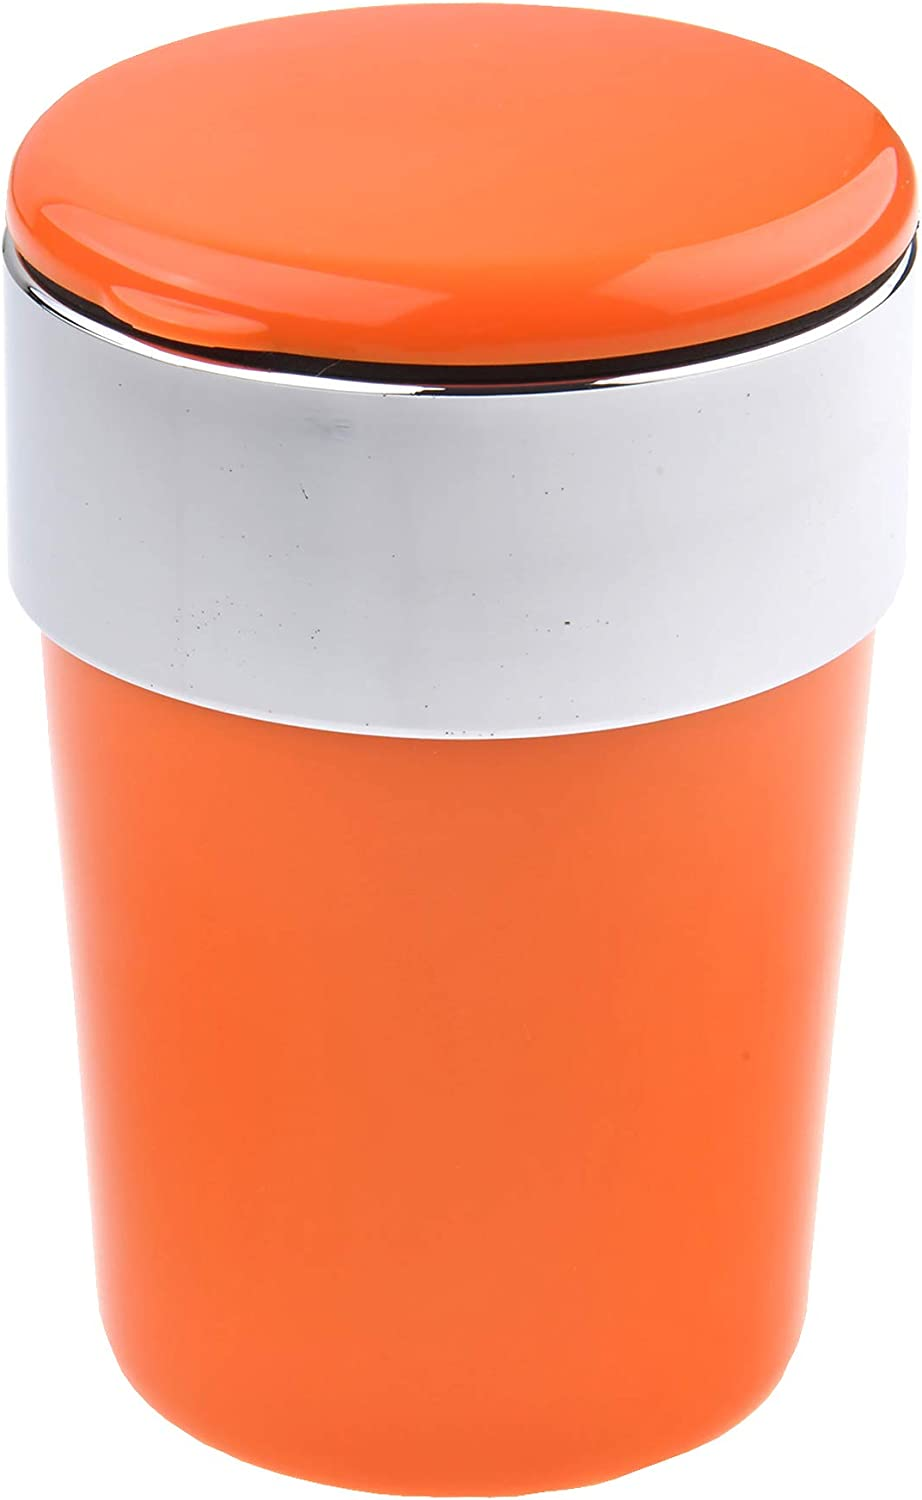 Mod with lid and Illumination Quantum Abacus Round Car Ashtray//Windproof Ashtray Made of Steel and ABS Polymer Colour: Orange 1892-05 Suitable for Cup Holders in The car